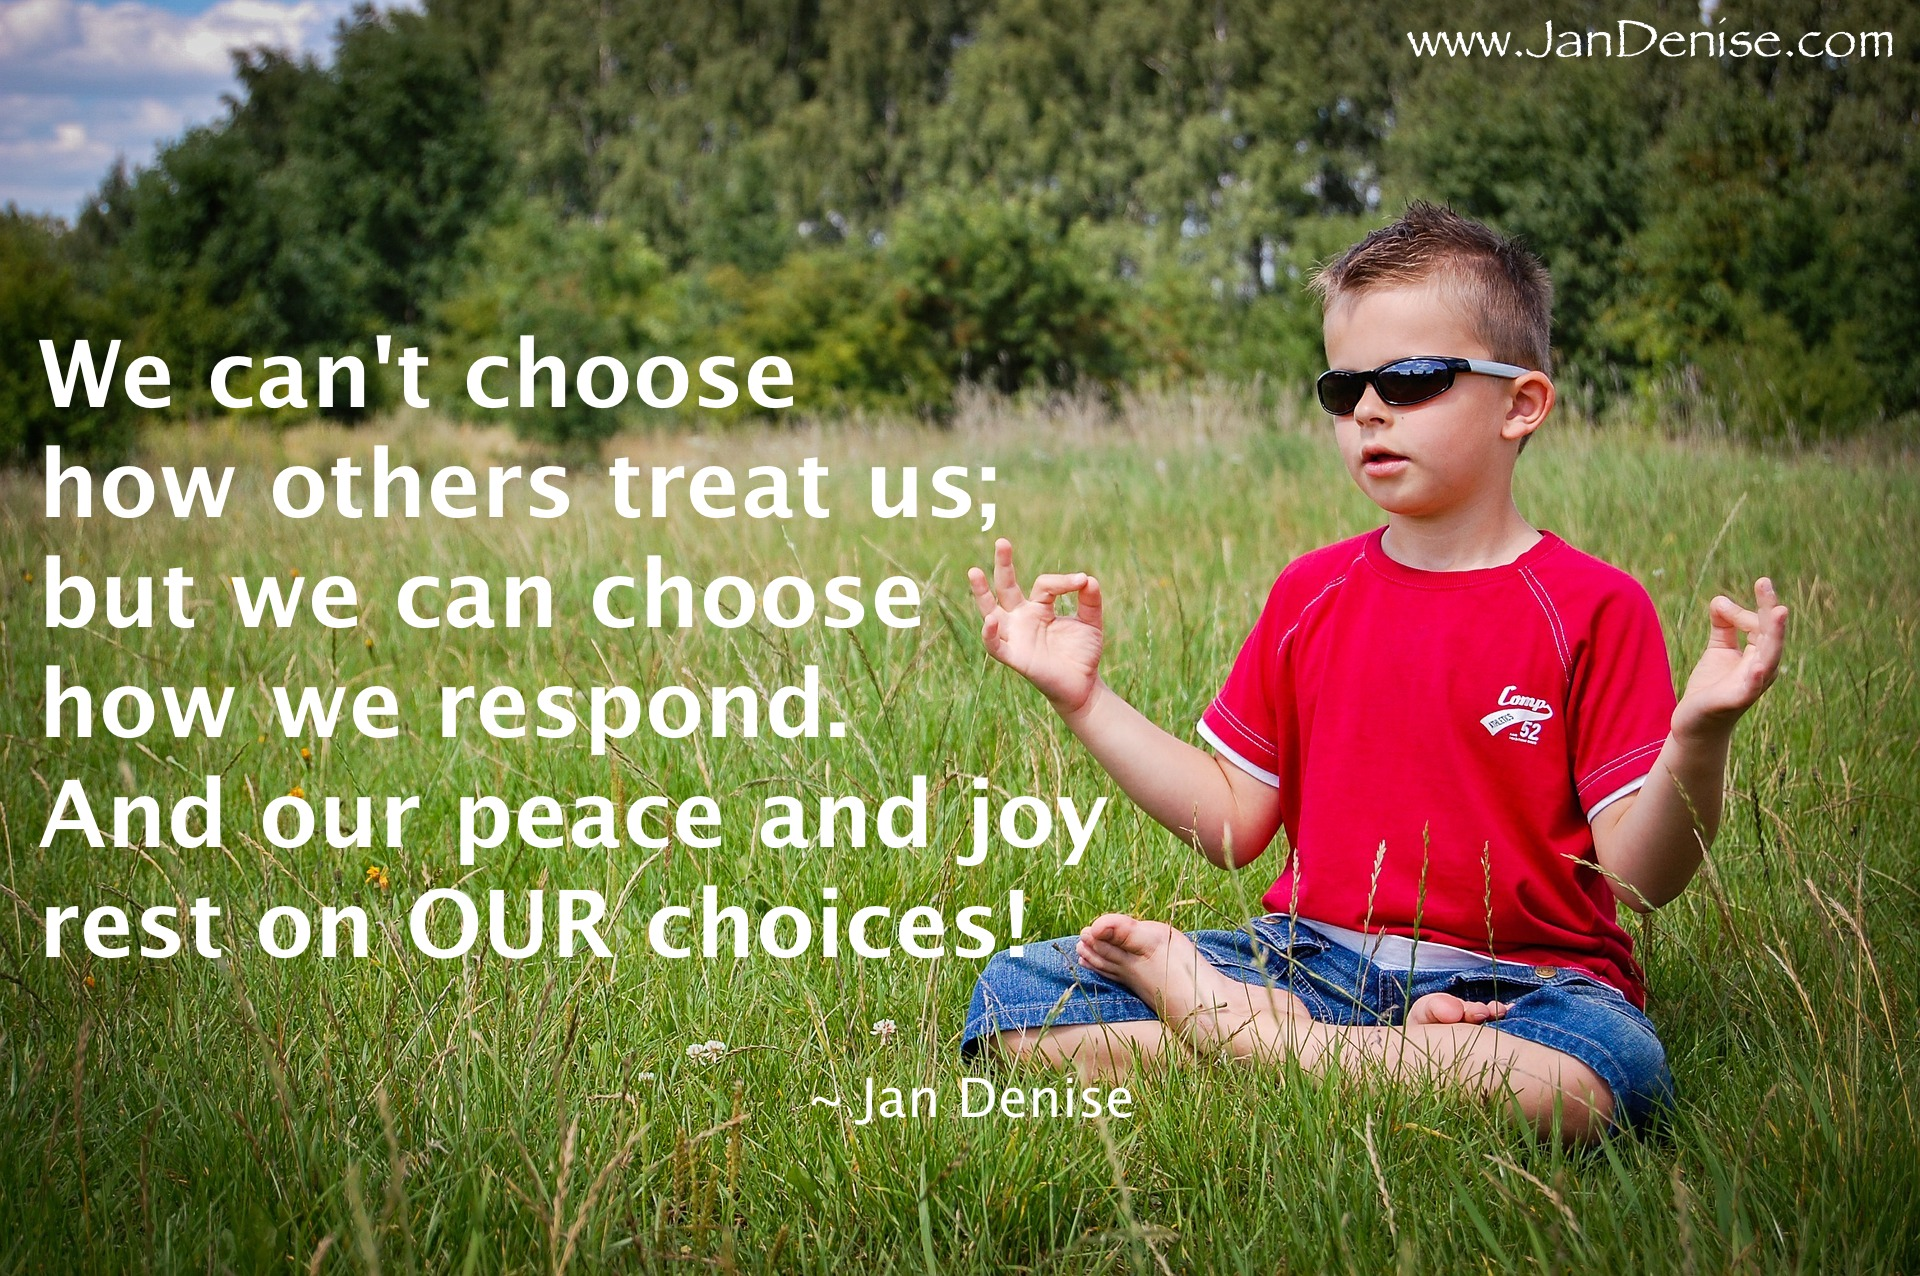 How are you choosing?